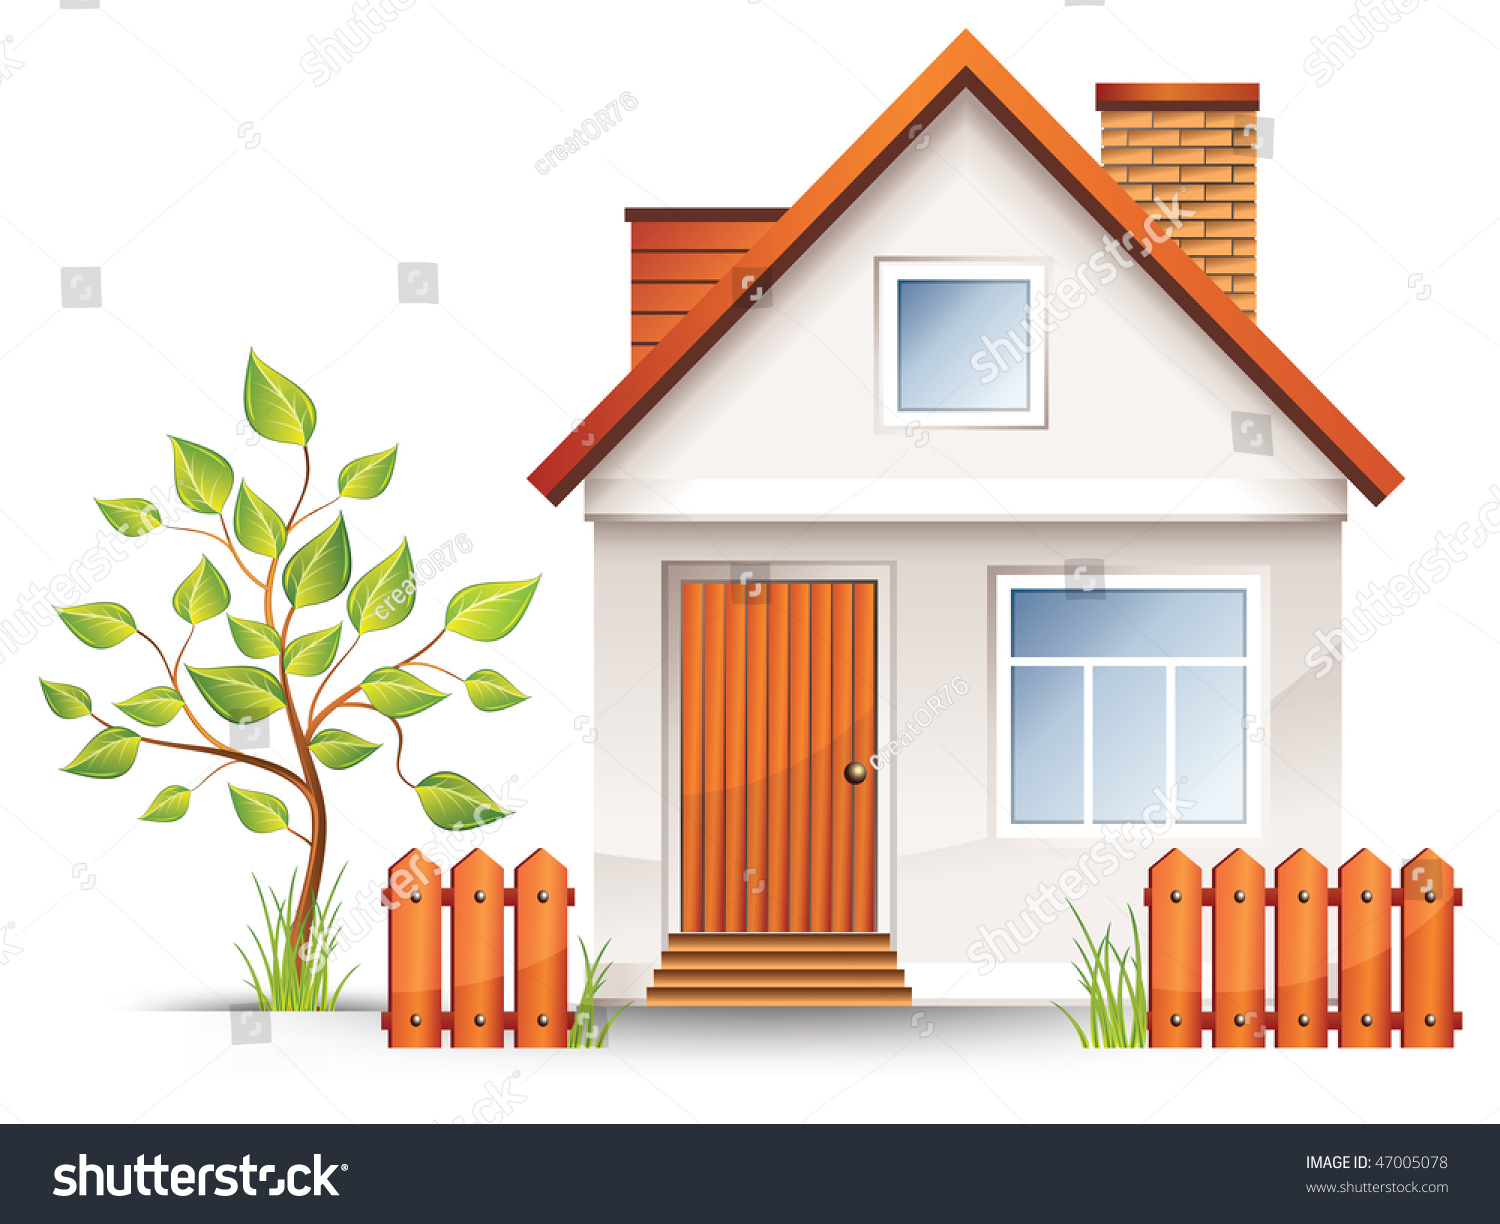 Small house nice green court yard stock vector 47005078 for Nice house music